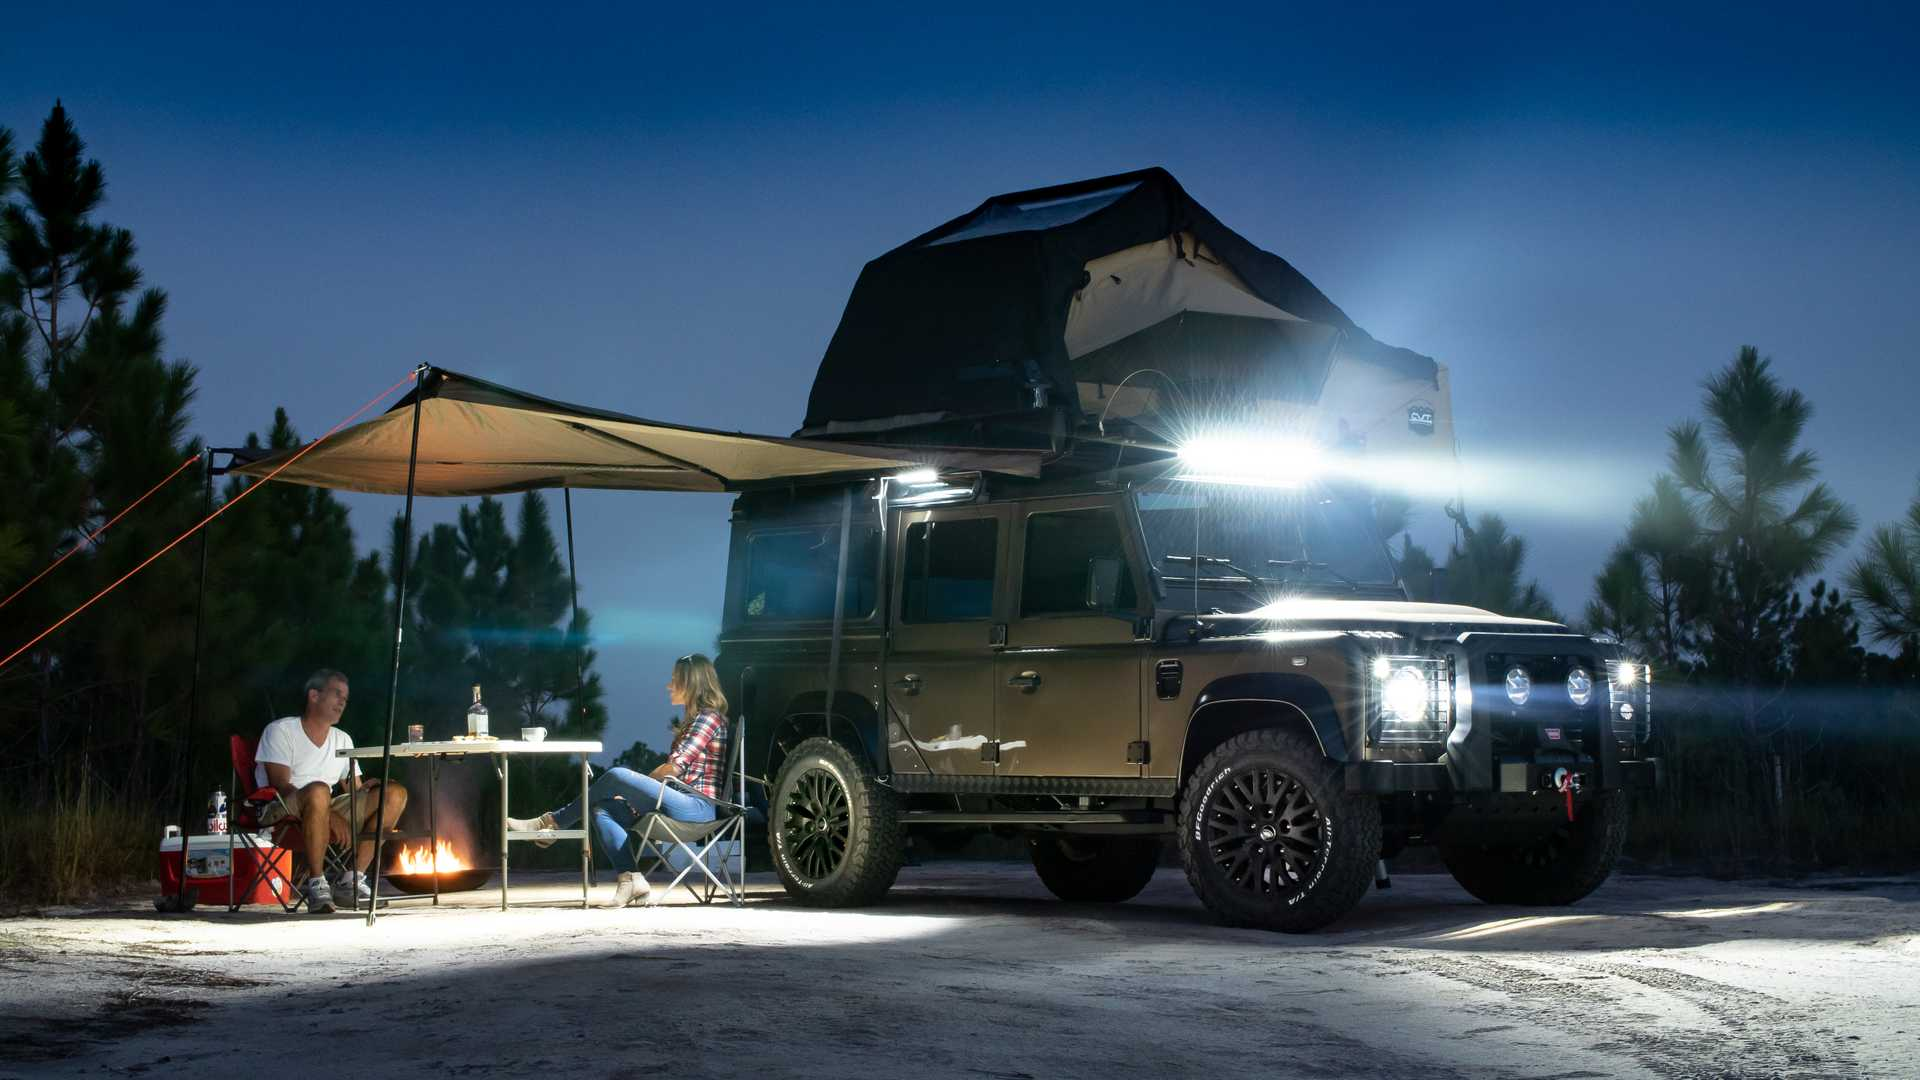 Would You Pay 240k For This Land Rover Defender 110 Overlander Conversion